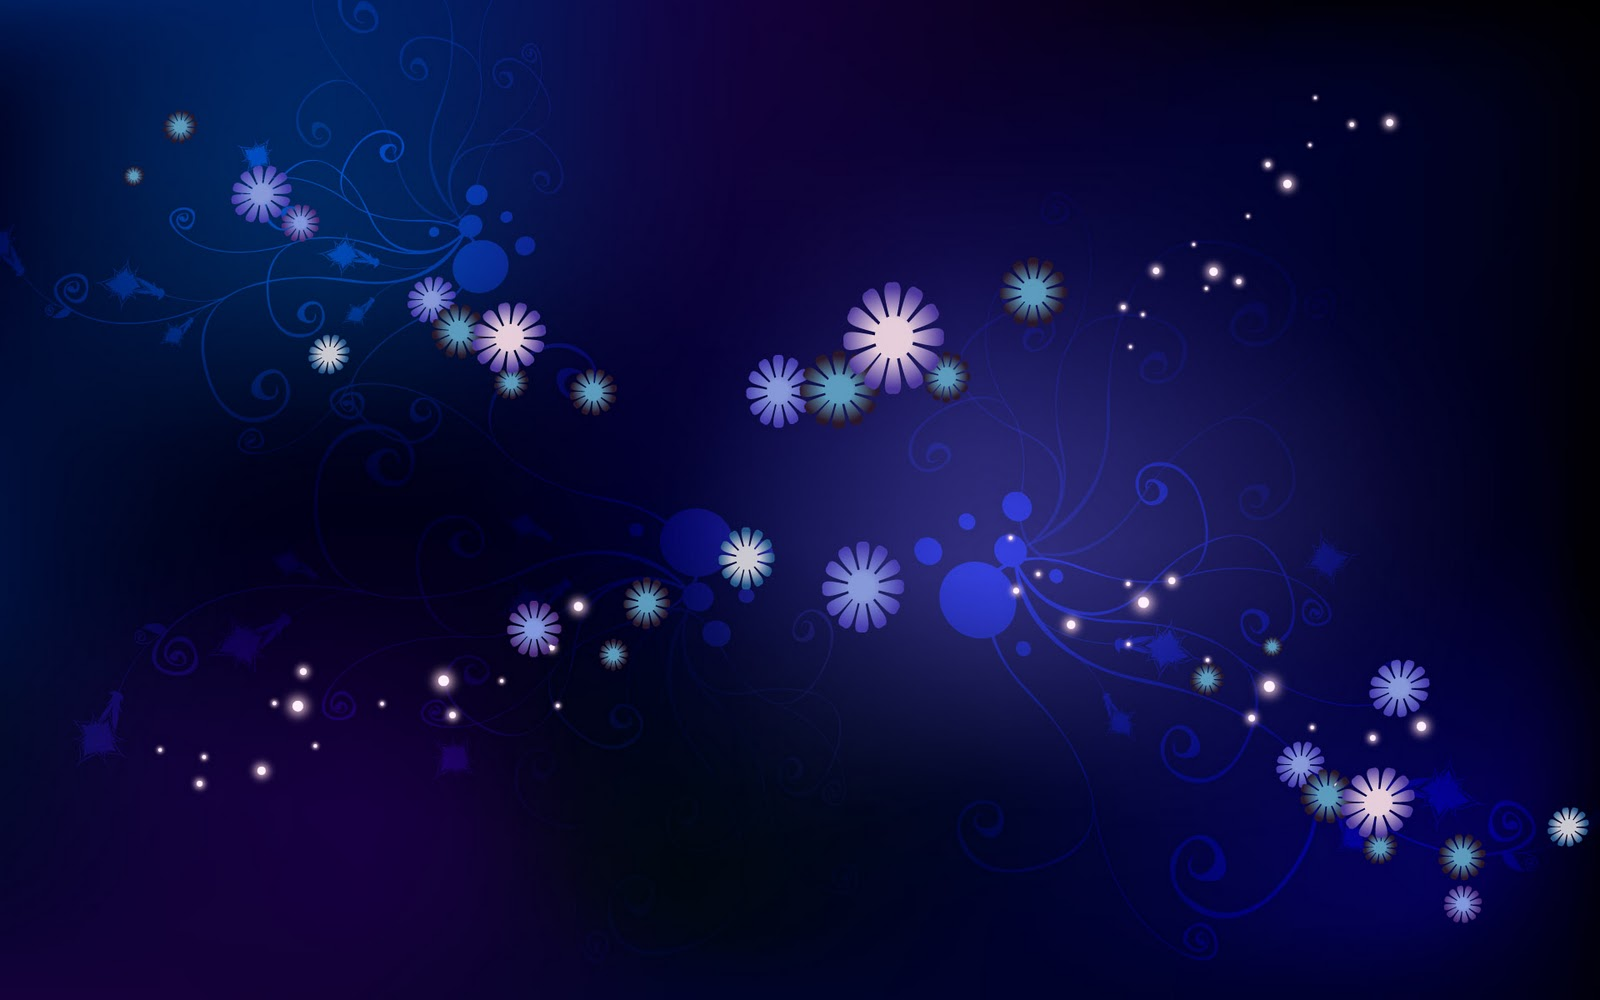 http://1.bp.blogspot.com/-Yli3CwBHusY/TpWUxt5EtfI/AAAAAAAAQeo/W6V9KD2ZMMg/s1600/Abstract+Shape+HD+Wallpaper+Set+3+%252813%2529.jpg